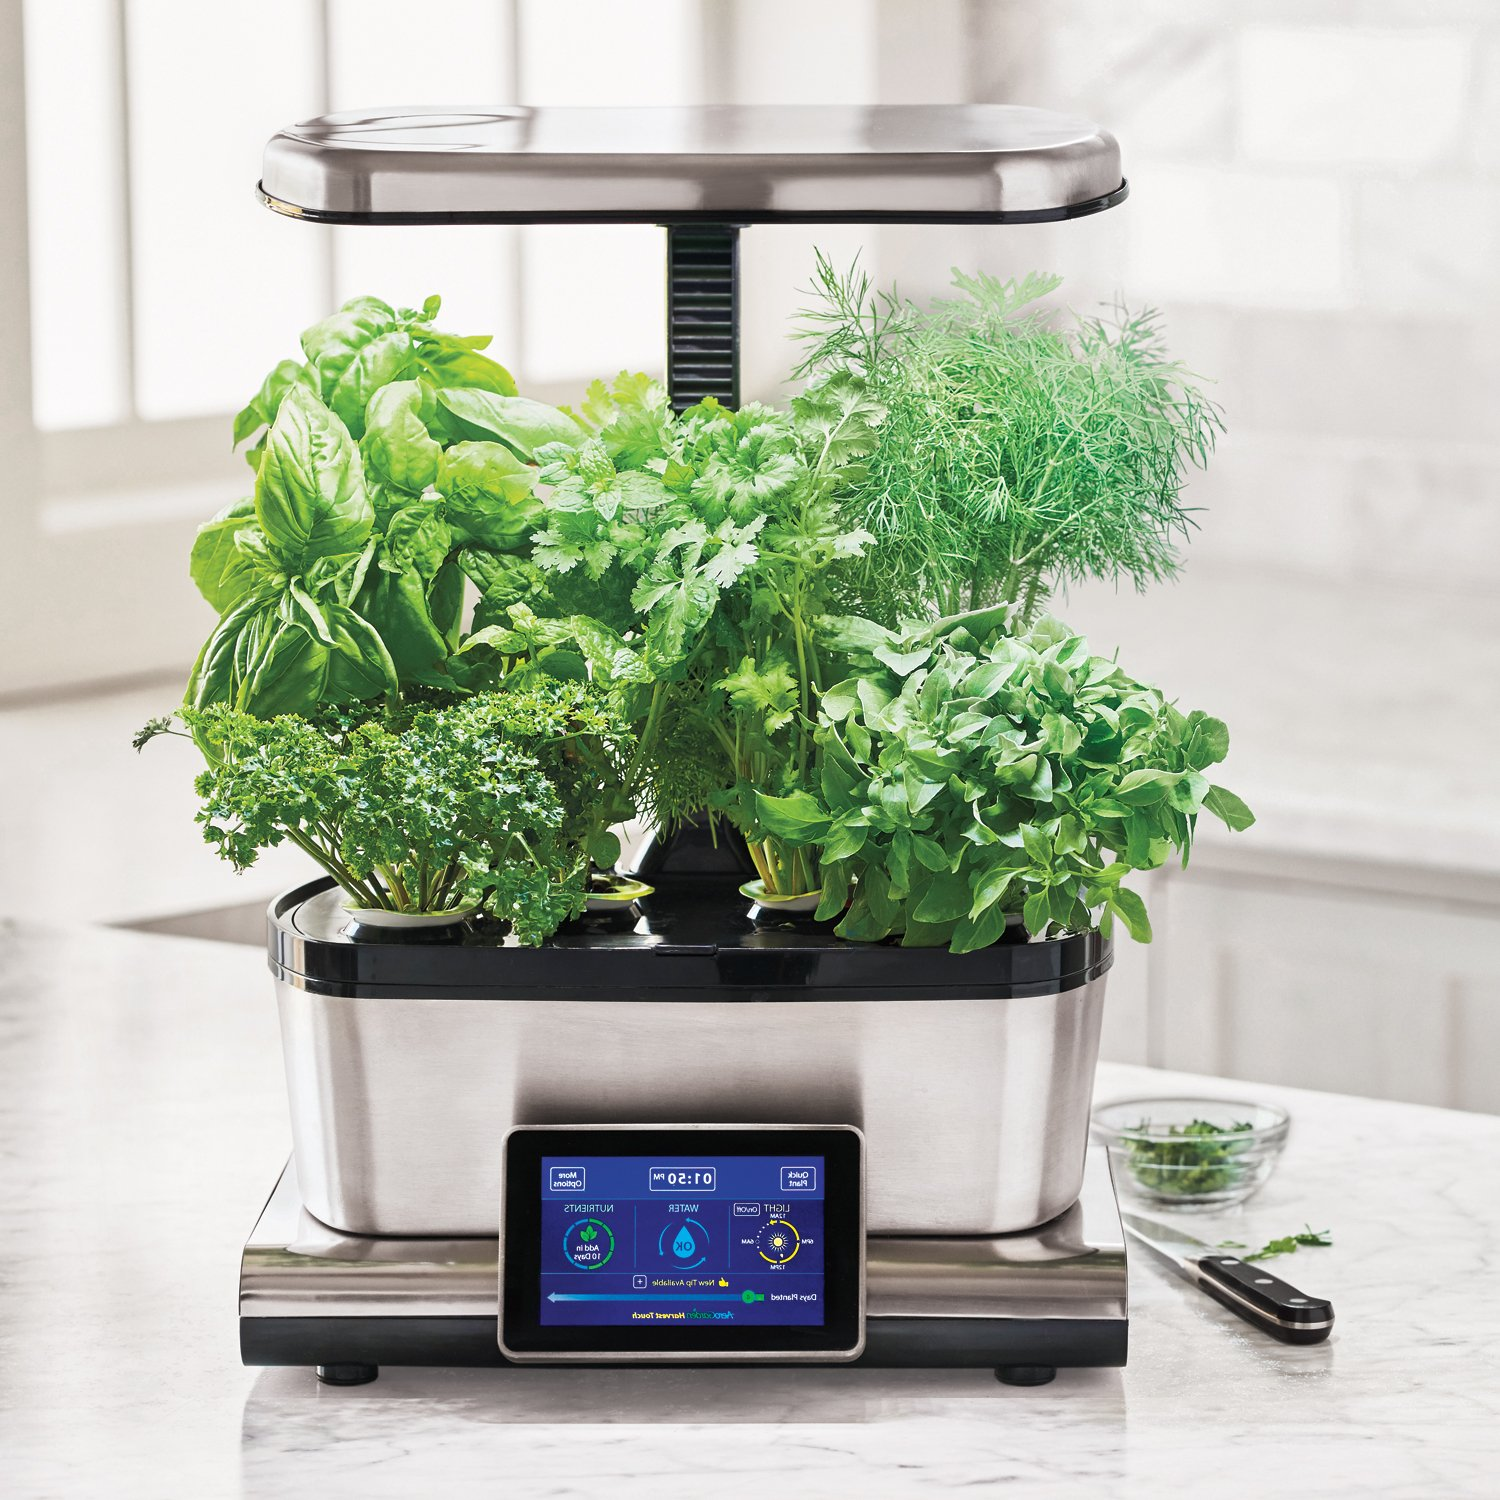 AeroGarden Harvest Touch with Gourmet Herb Seed Pod Kit, Stainless Steel by AeroGrow (Image #1)